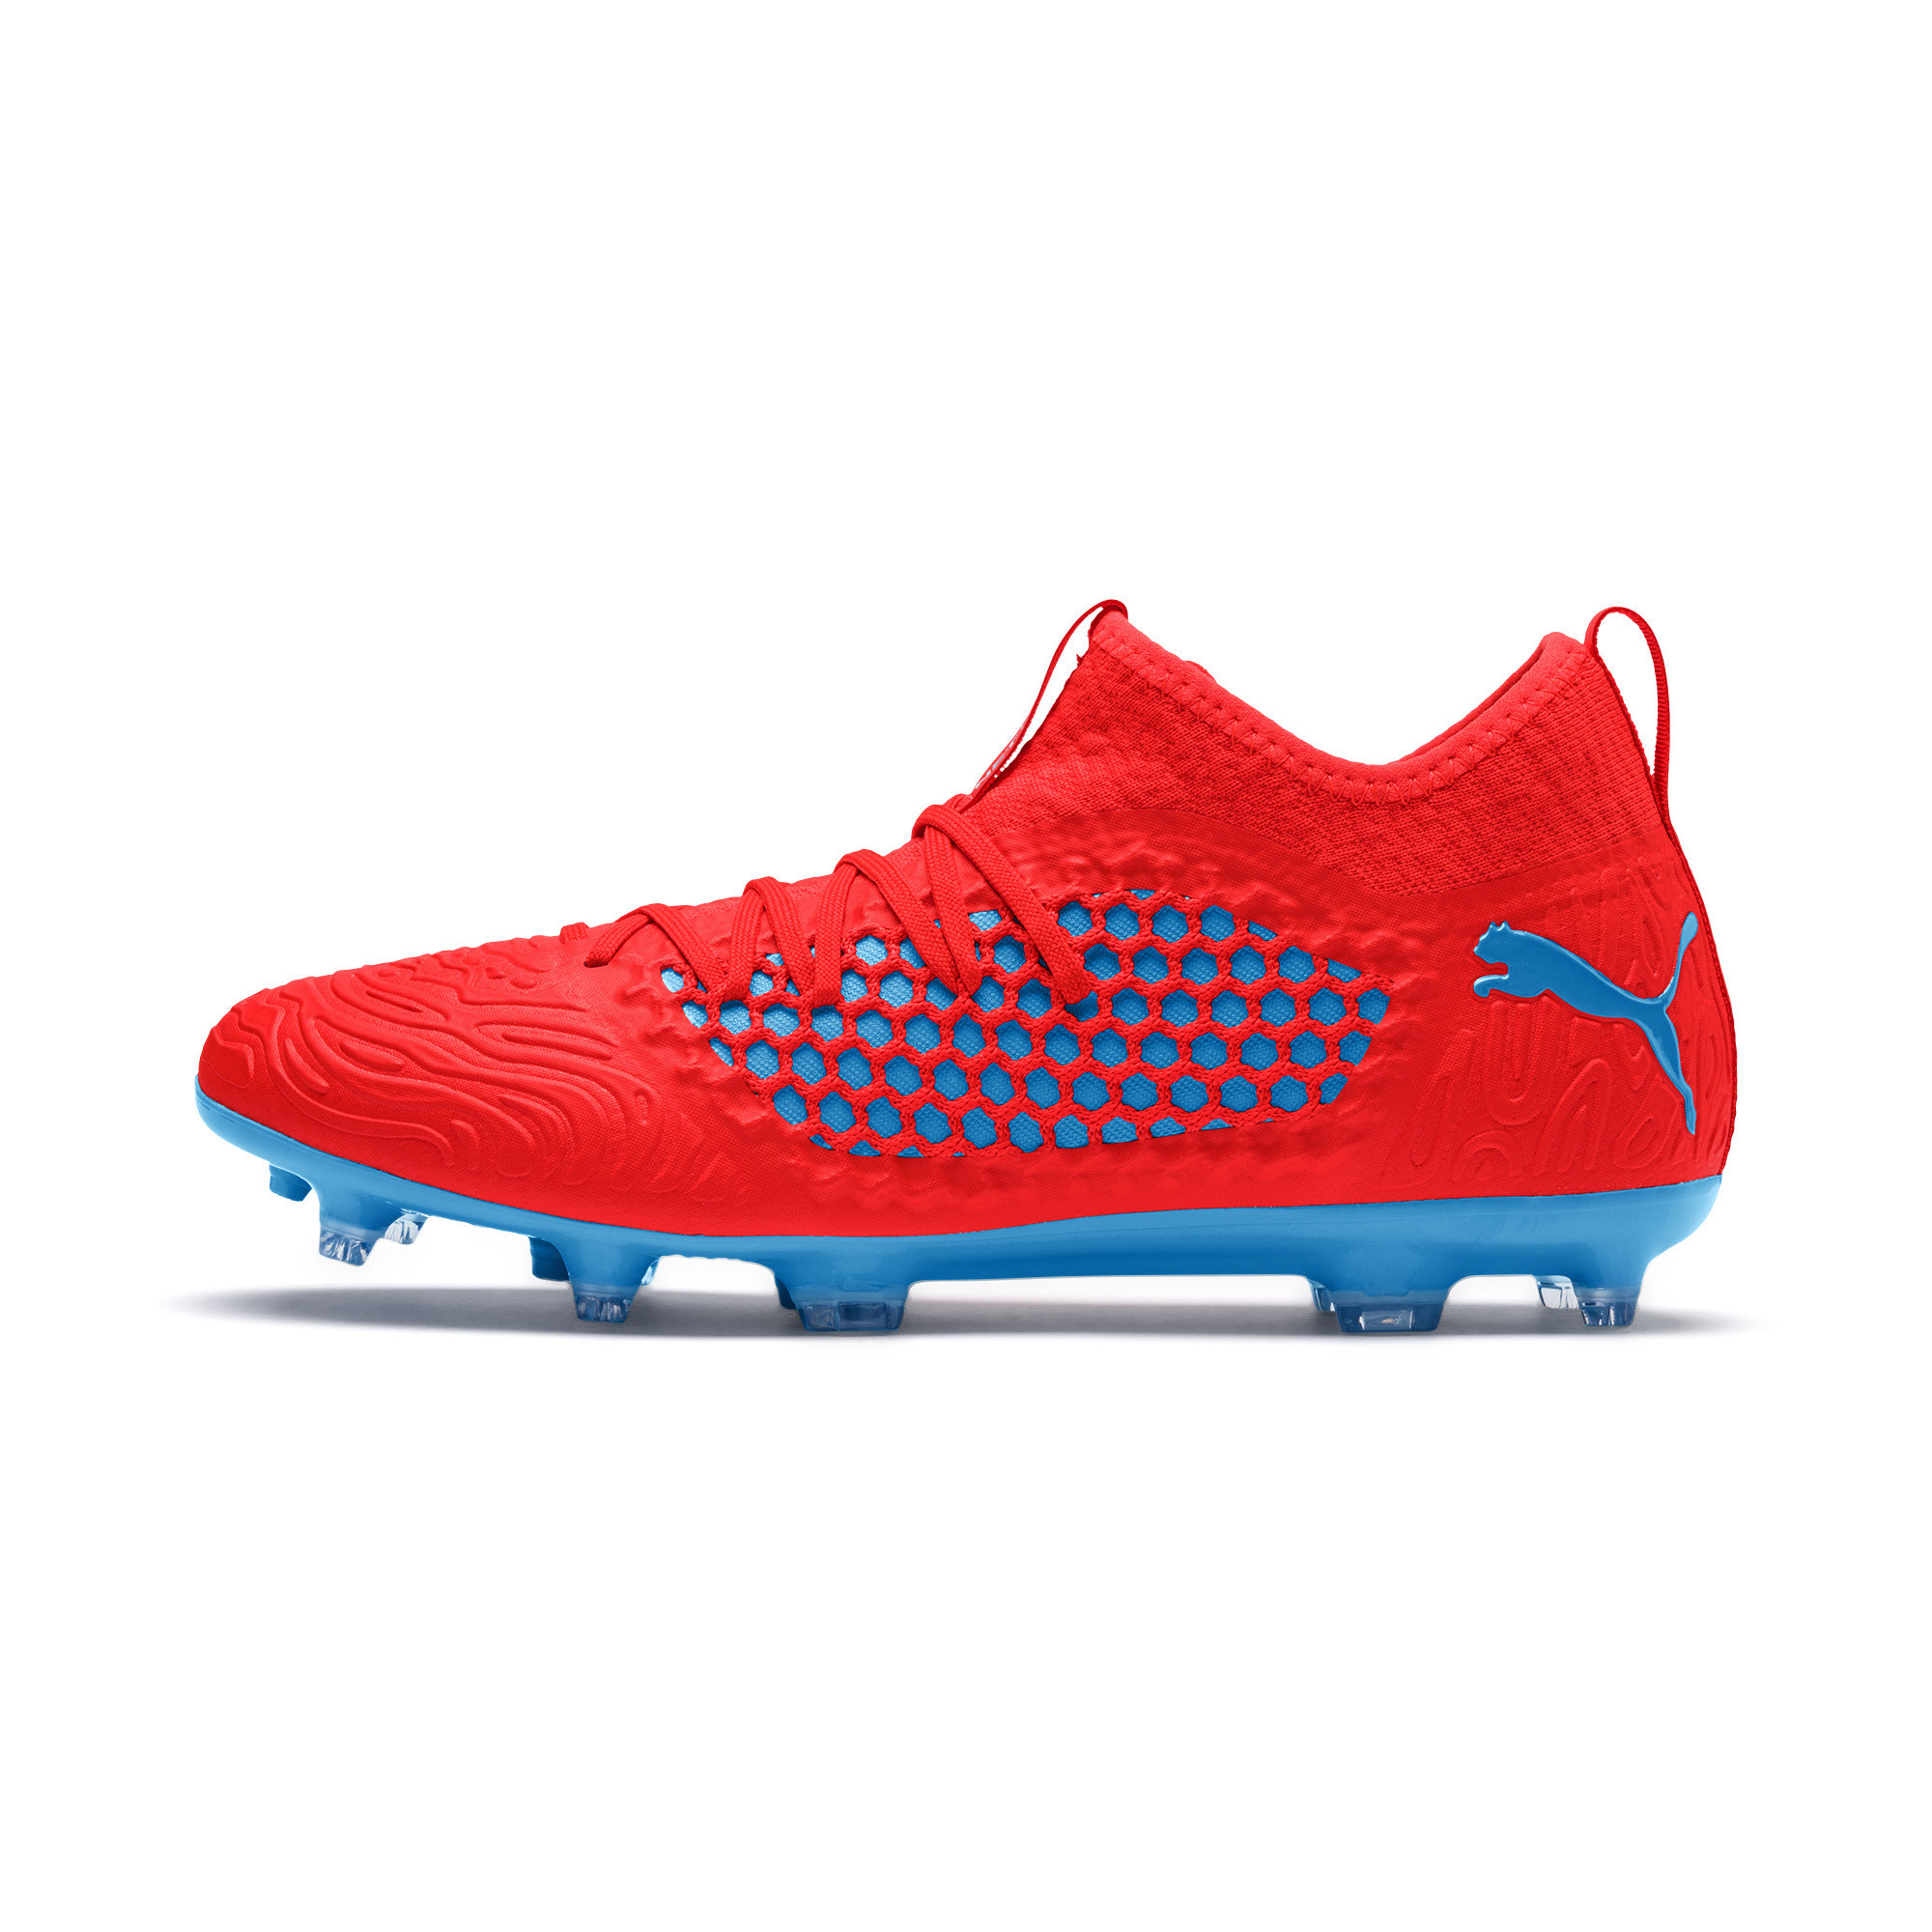 185b4b036 Football Boots - AFL, Soccer & Rugby Shoes | PUMA®